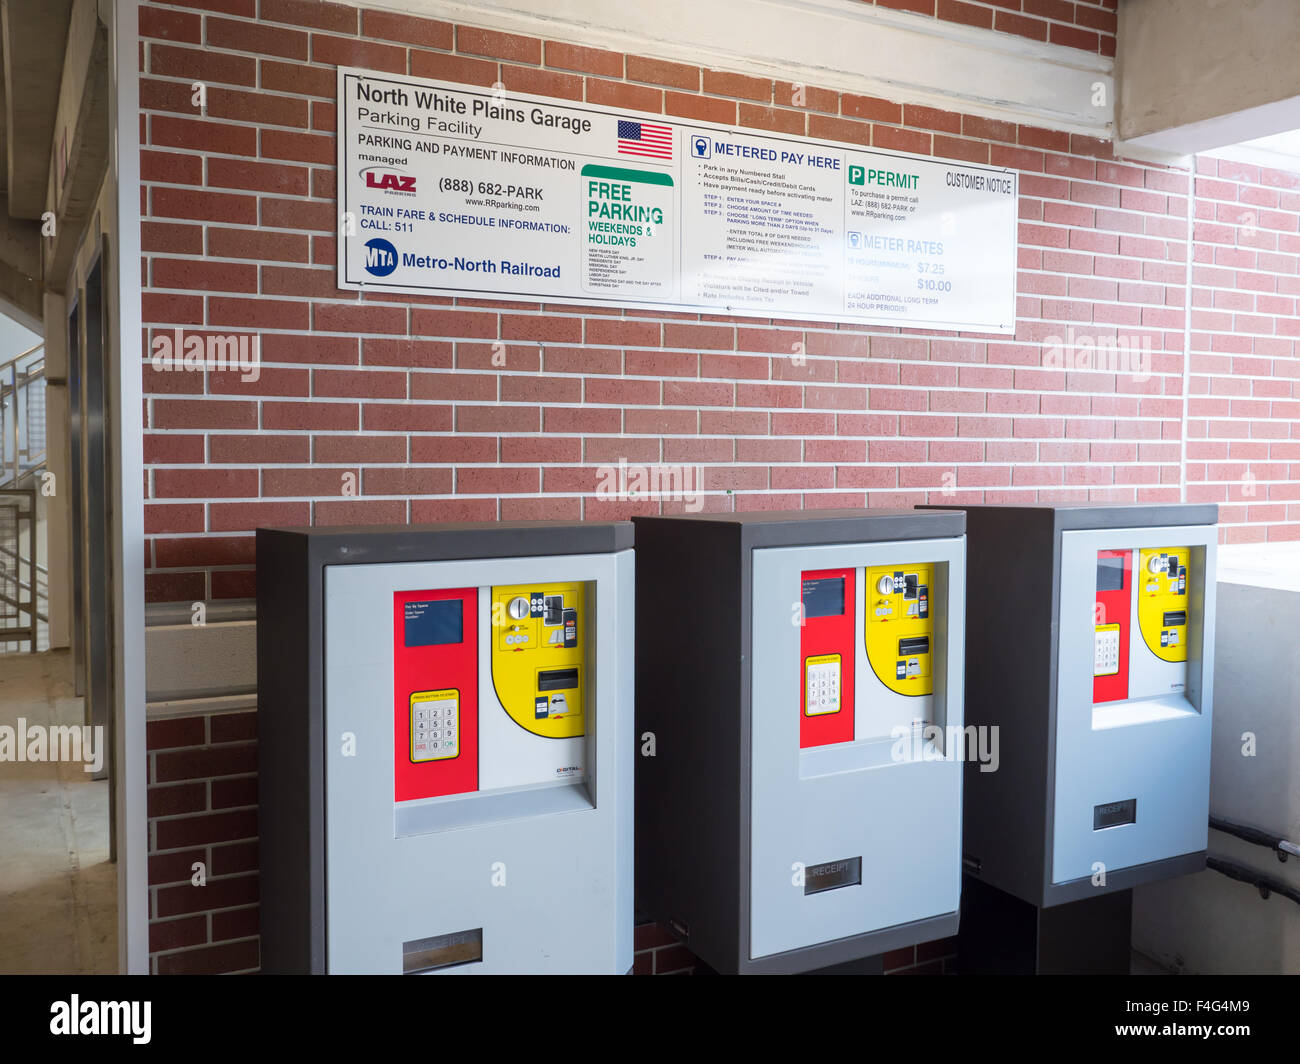 Multi-space pay stations inside the Metro-North North White Plains Station Parking Garage. - Stock Image